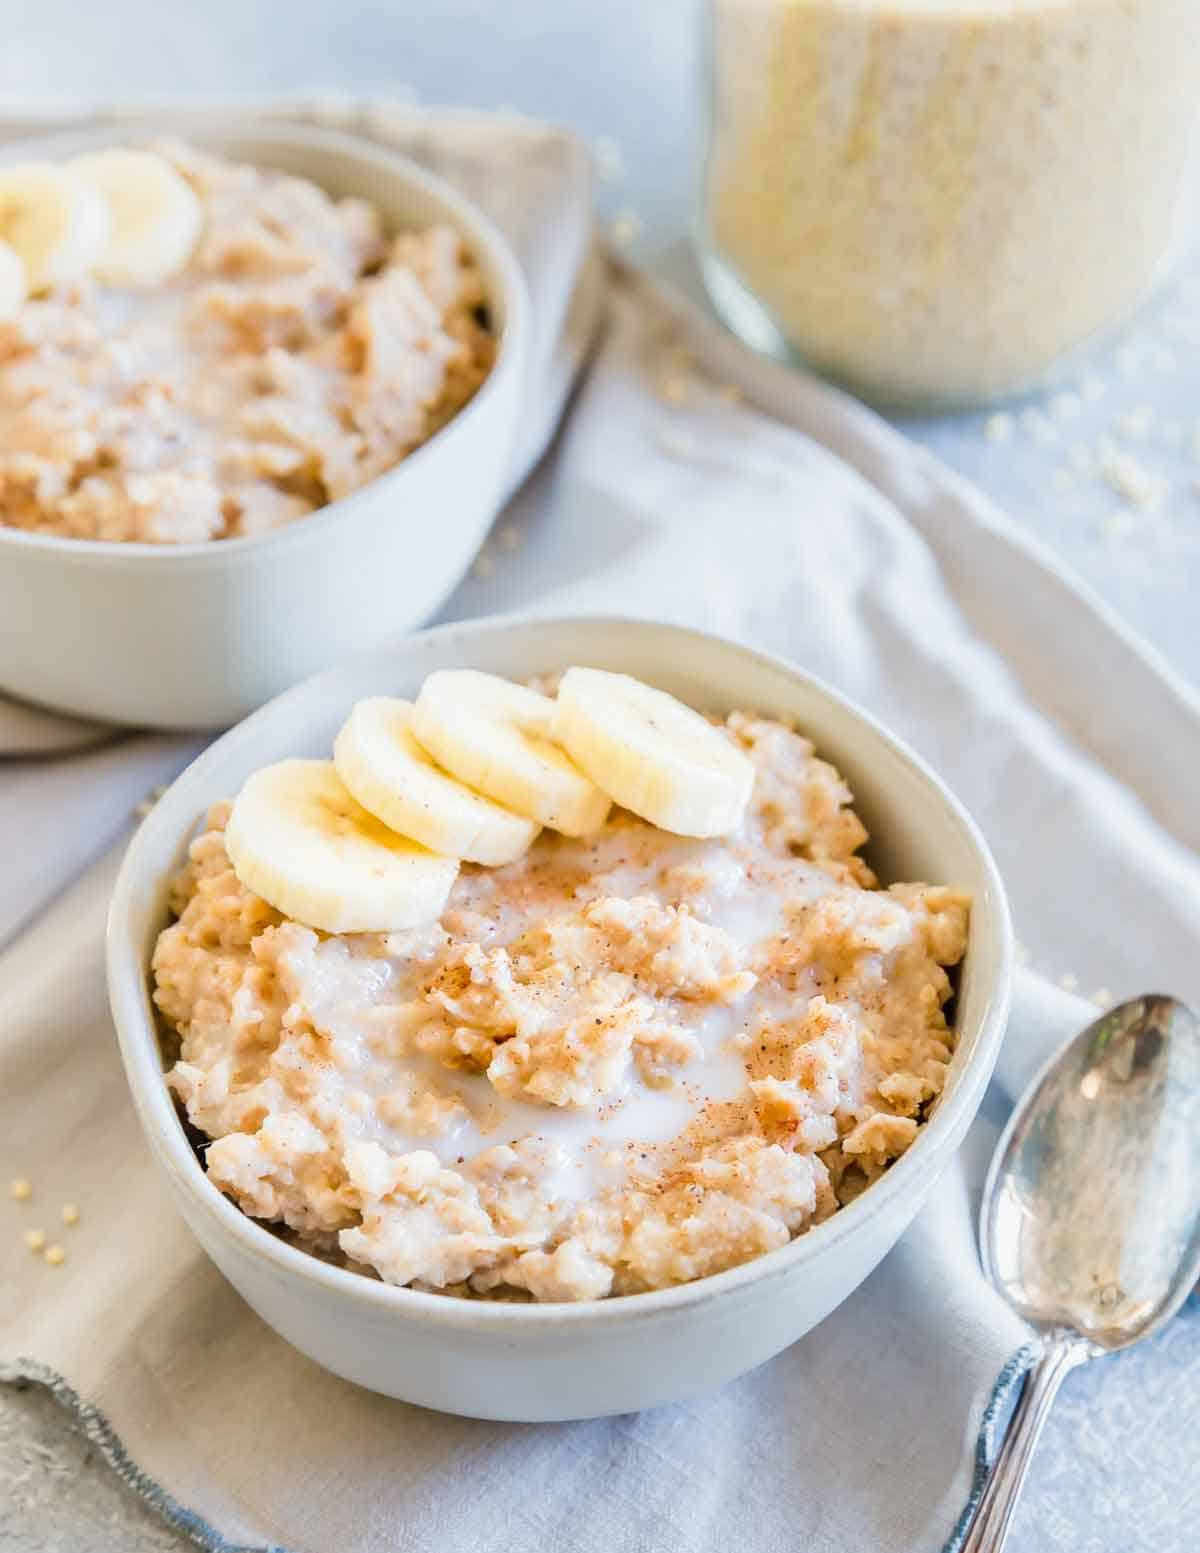 Millet porridge is a creamy, gluten-free breakfast easily made in the slow cooker overnight and ready when you wake up. With hints of cinnamon and vanilla it's the perfect base to top with your favorite fresh fruit, nuts and seeds for a hearty start to the day.